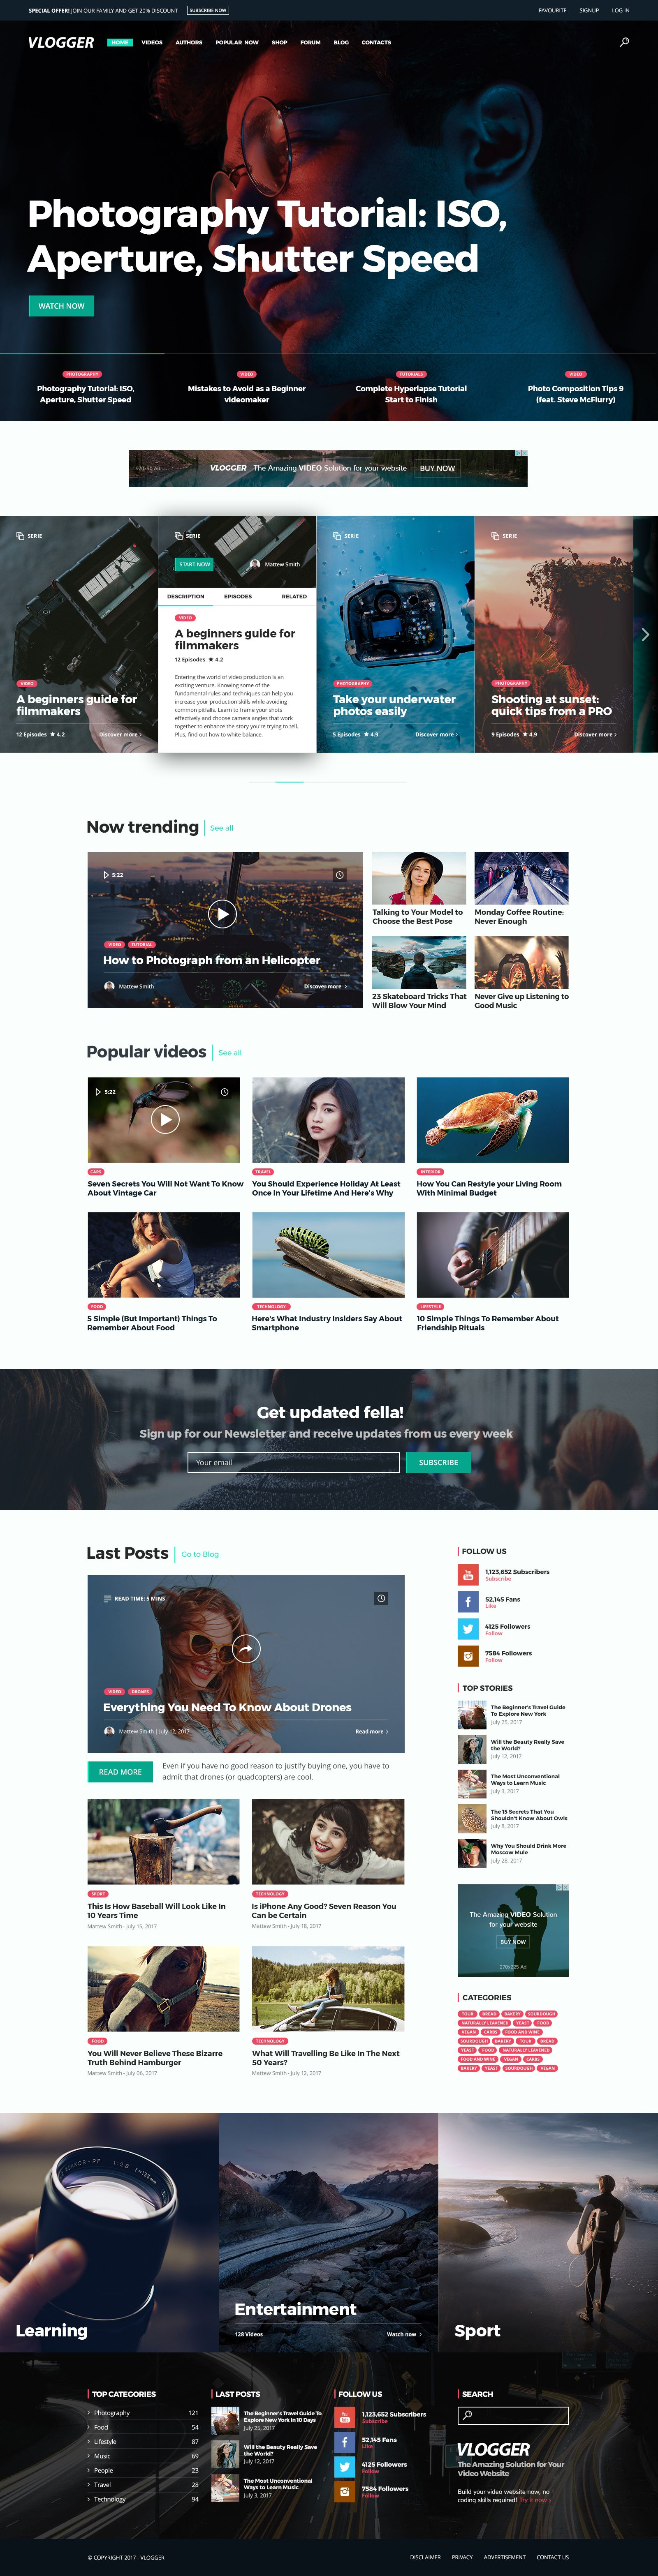 Vlogger - Video Website Template #youtube video • Download ➝ https://themeforest.net/item/vlogger-video-website-template/20144476?ref=pxcr